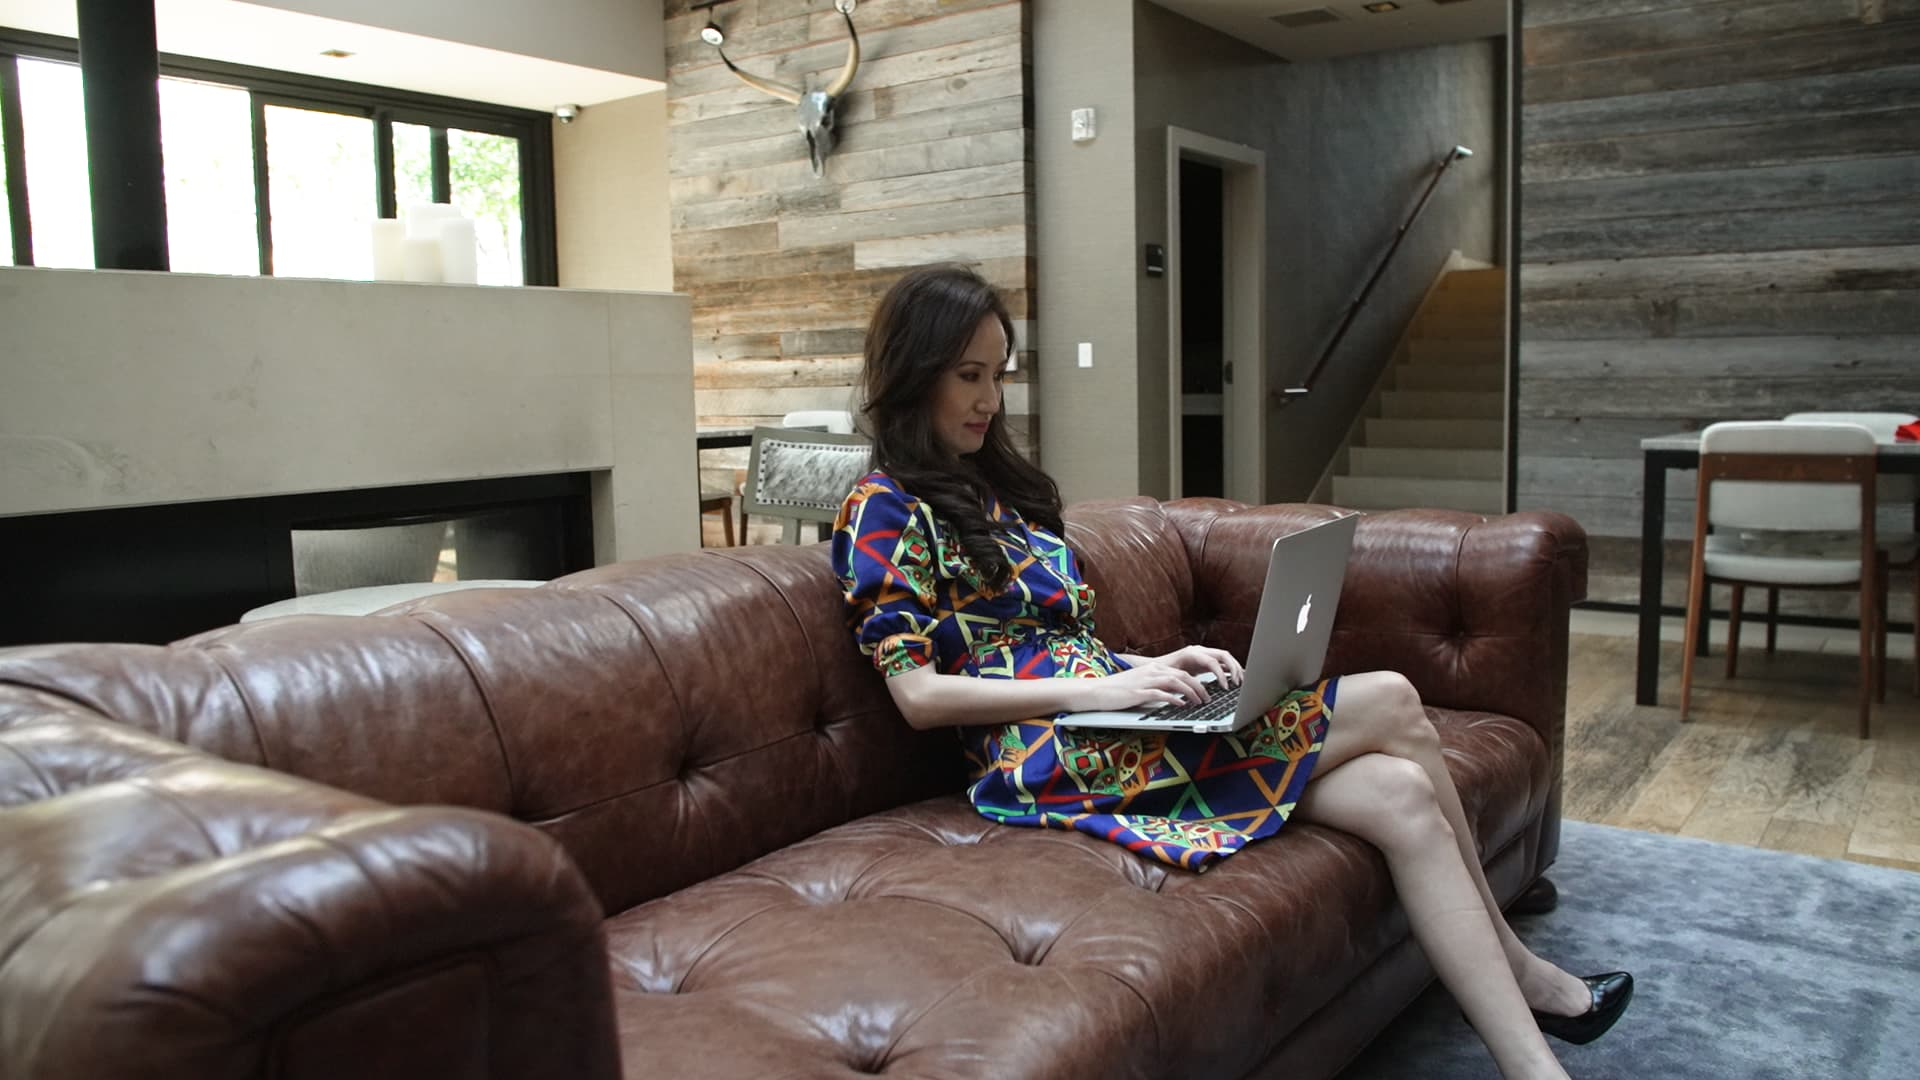 Shan Shan Fu works on her business, Millennials in Motion.